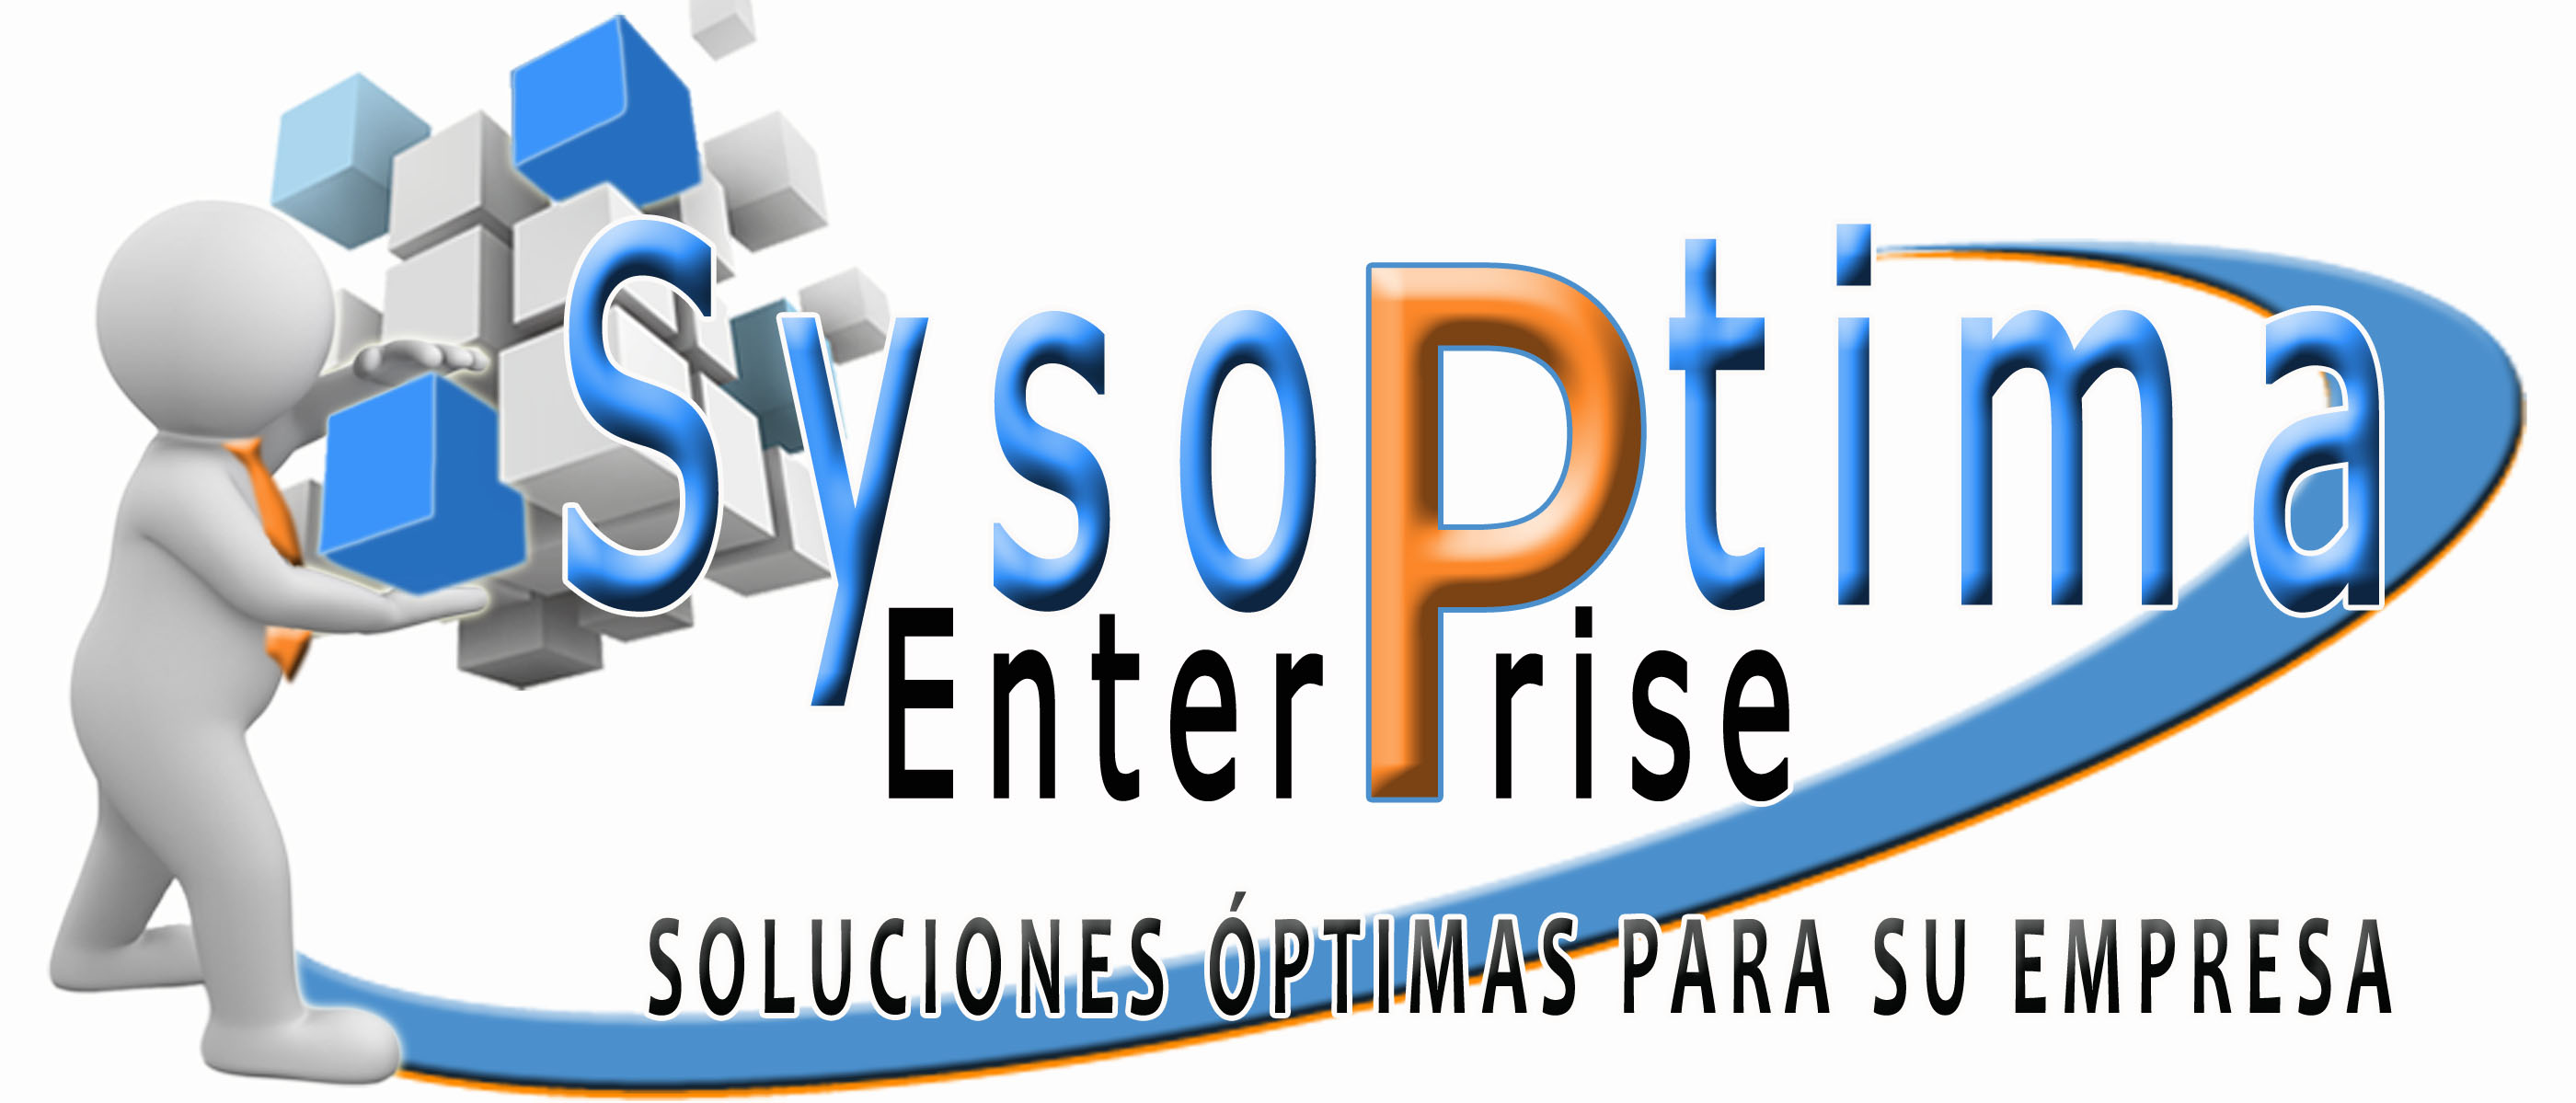 Sysoptima Enterprise